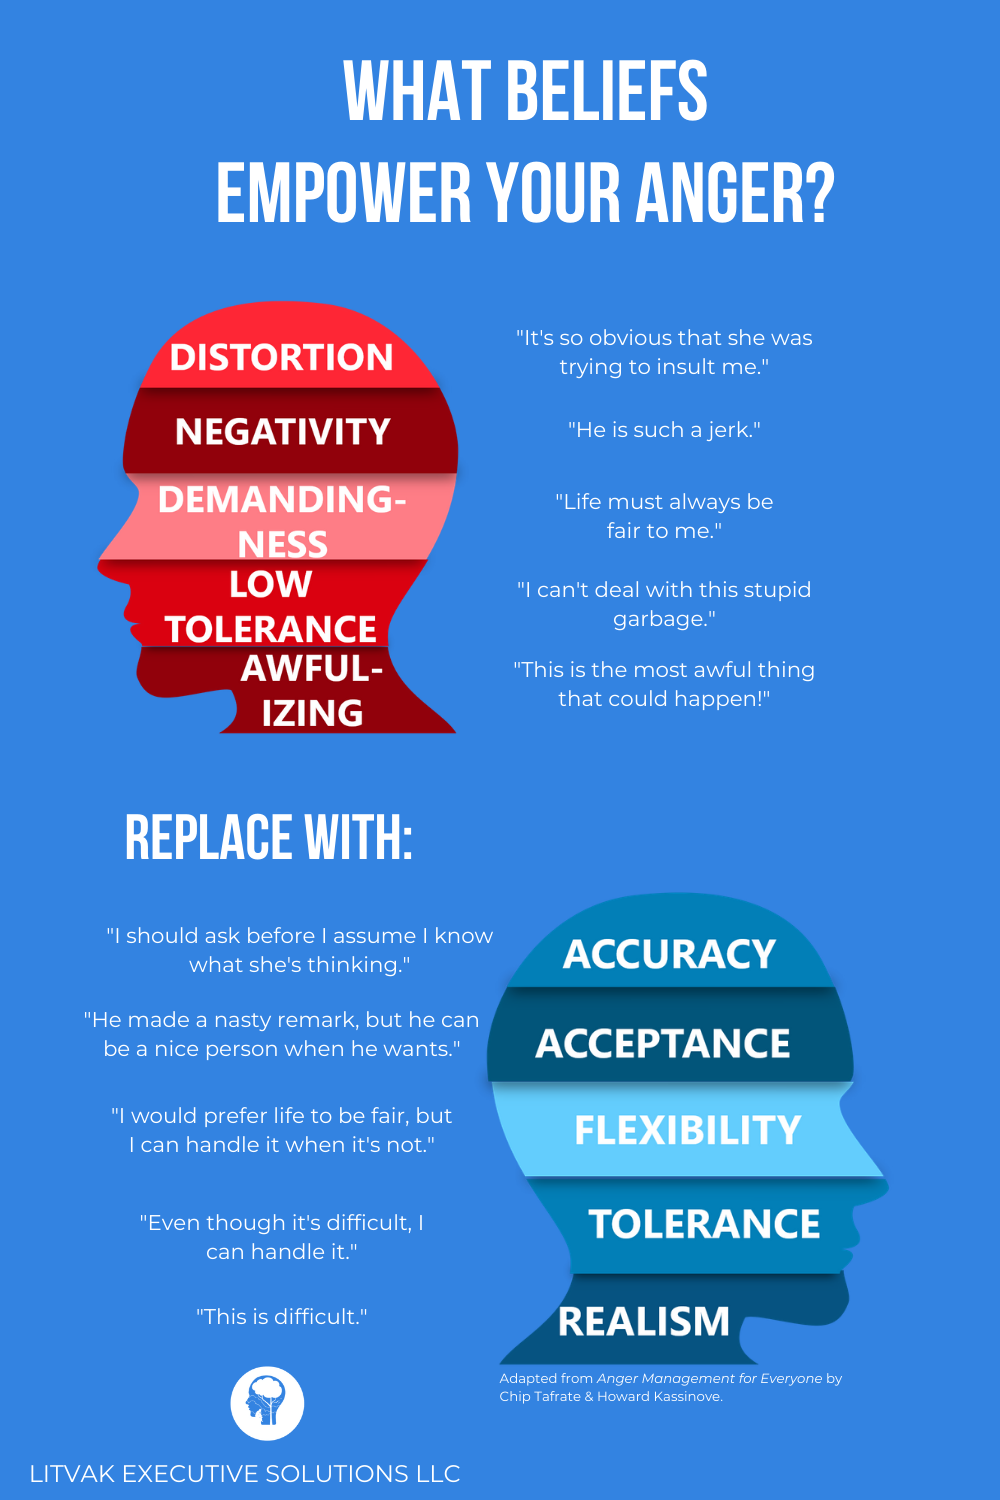 how to diffuse conflict in a crisis -- beliefs that empower anger